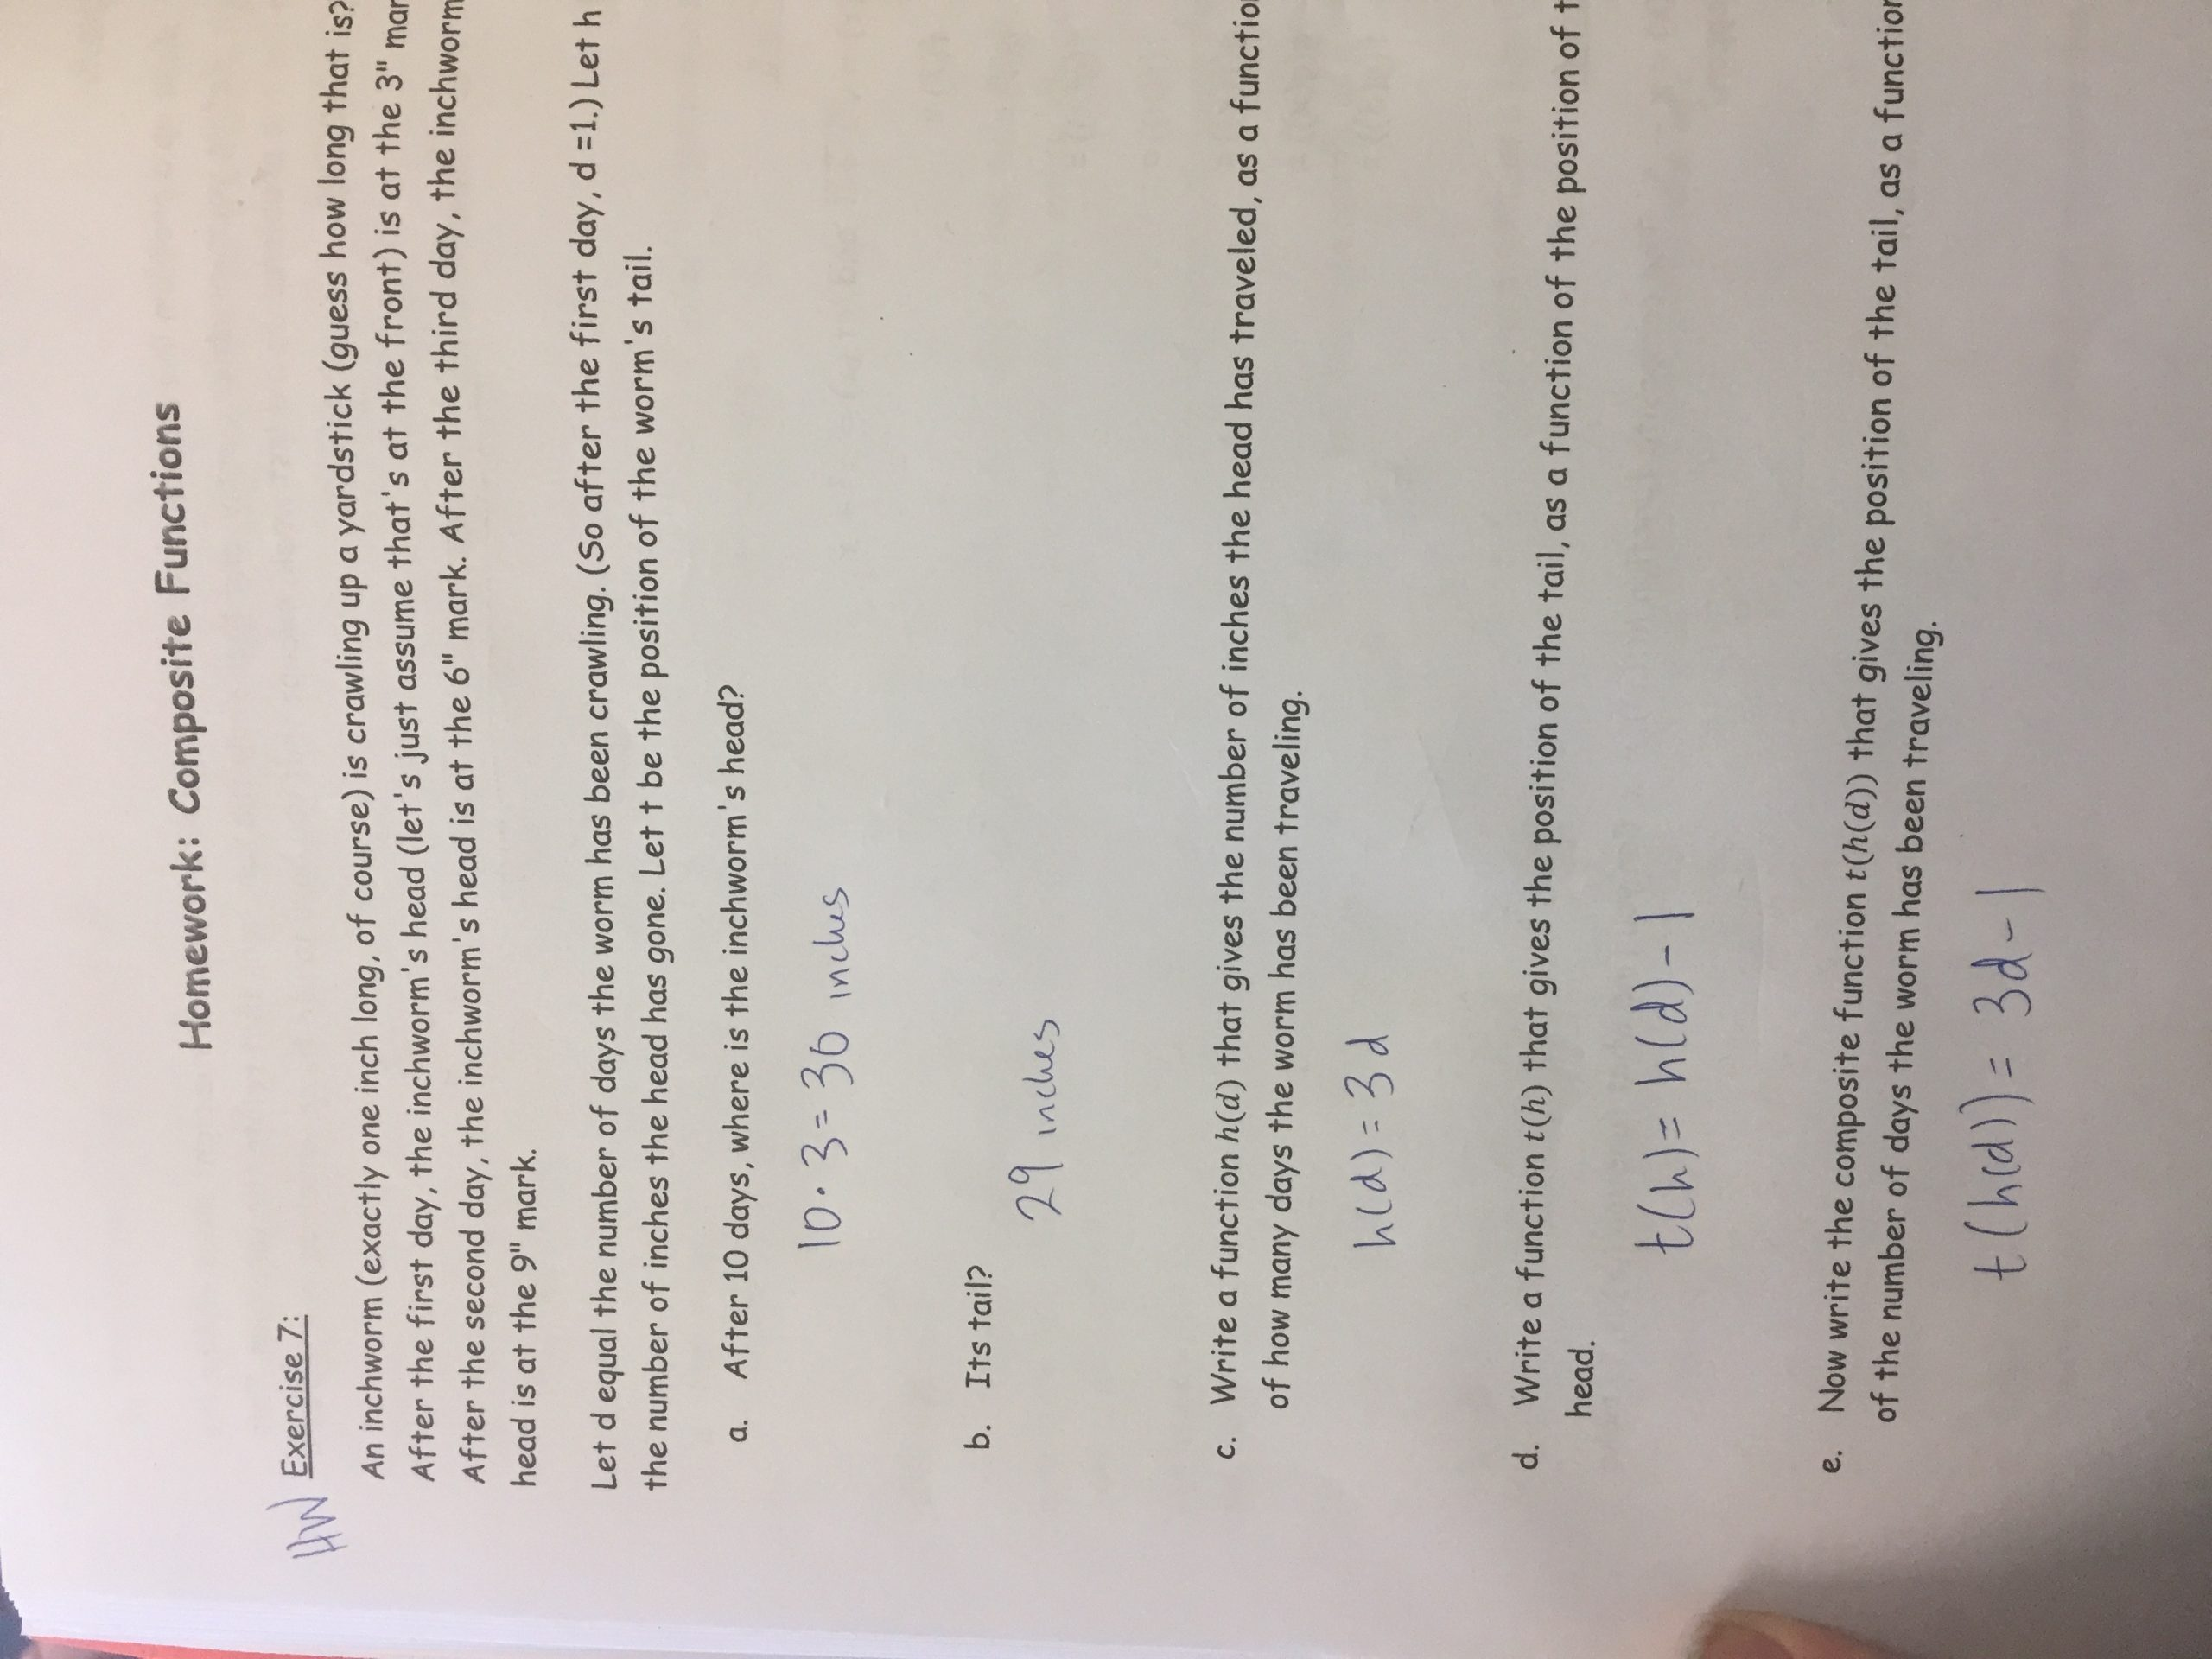 Function Notation Worksheet Answers Unit 1 Functions Lizzy S Classroom